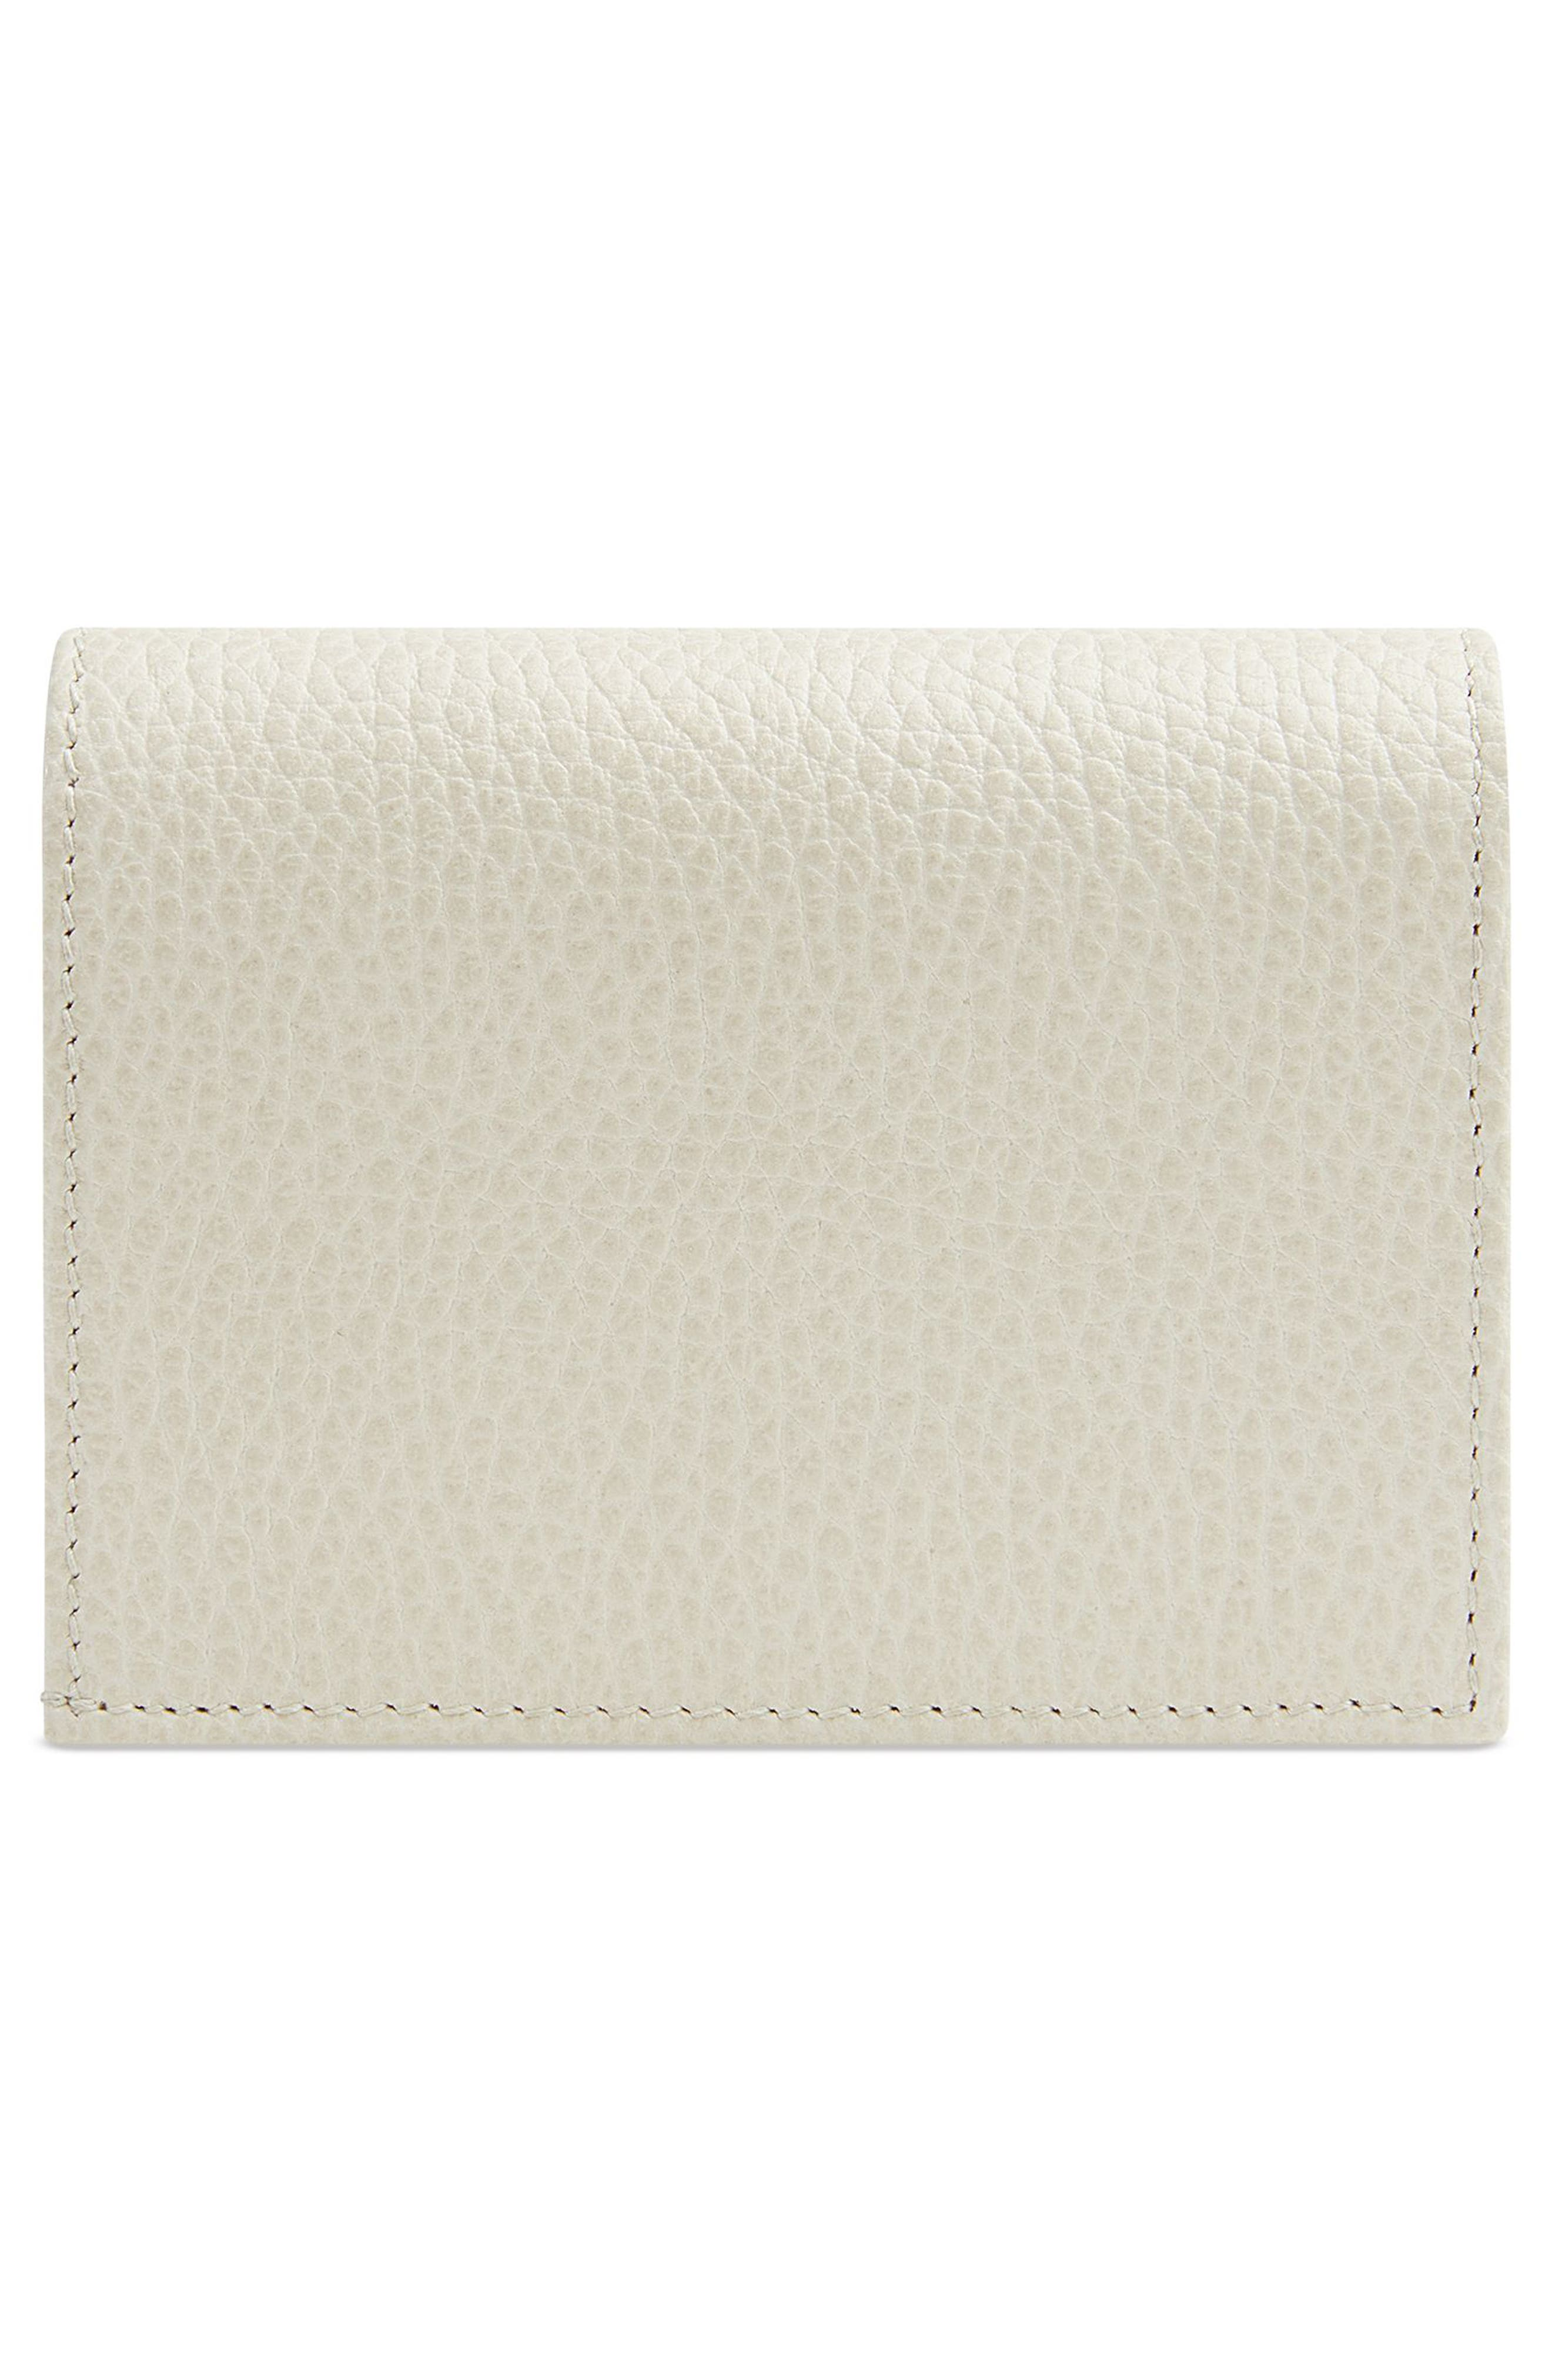 Fiocchino Leather Card Case,                             Alternate thumbnail 4, color,                             Mystic White/ Pink/ Crystal